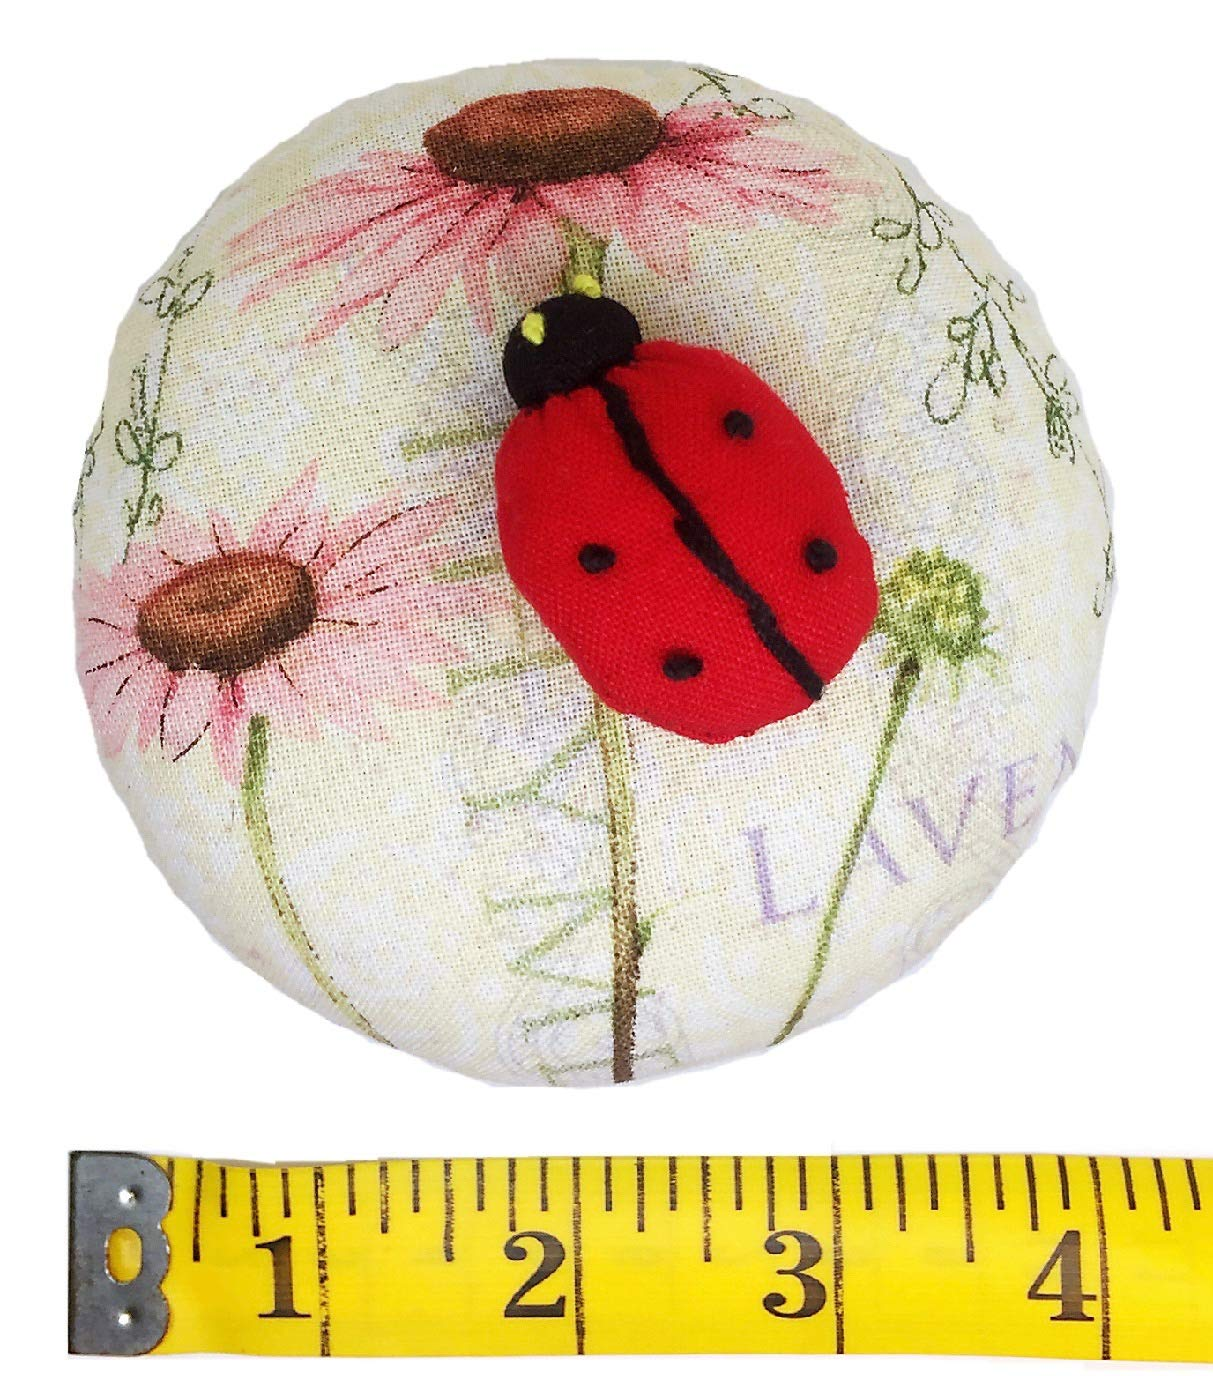 PeavyTailor Emery Pin Cushion 10oz Extra Large Keep Needles Clean and Sharp Needle Storage Organizer - Ladybug Red by PeavyTailor